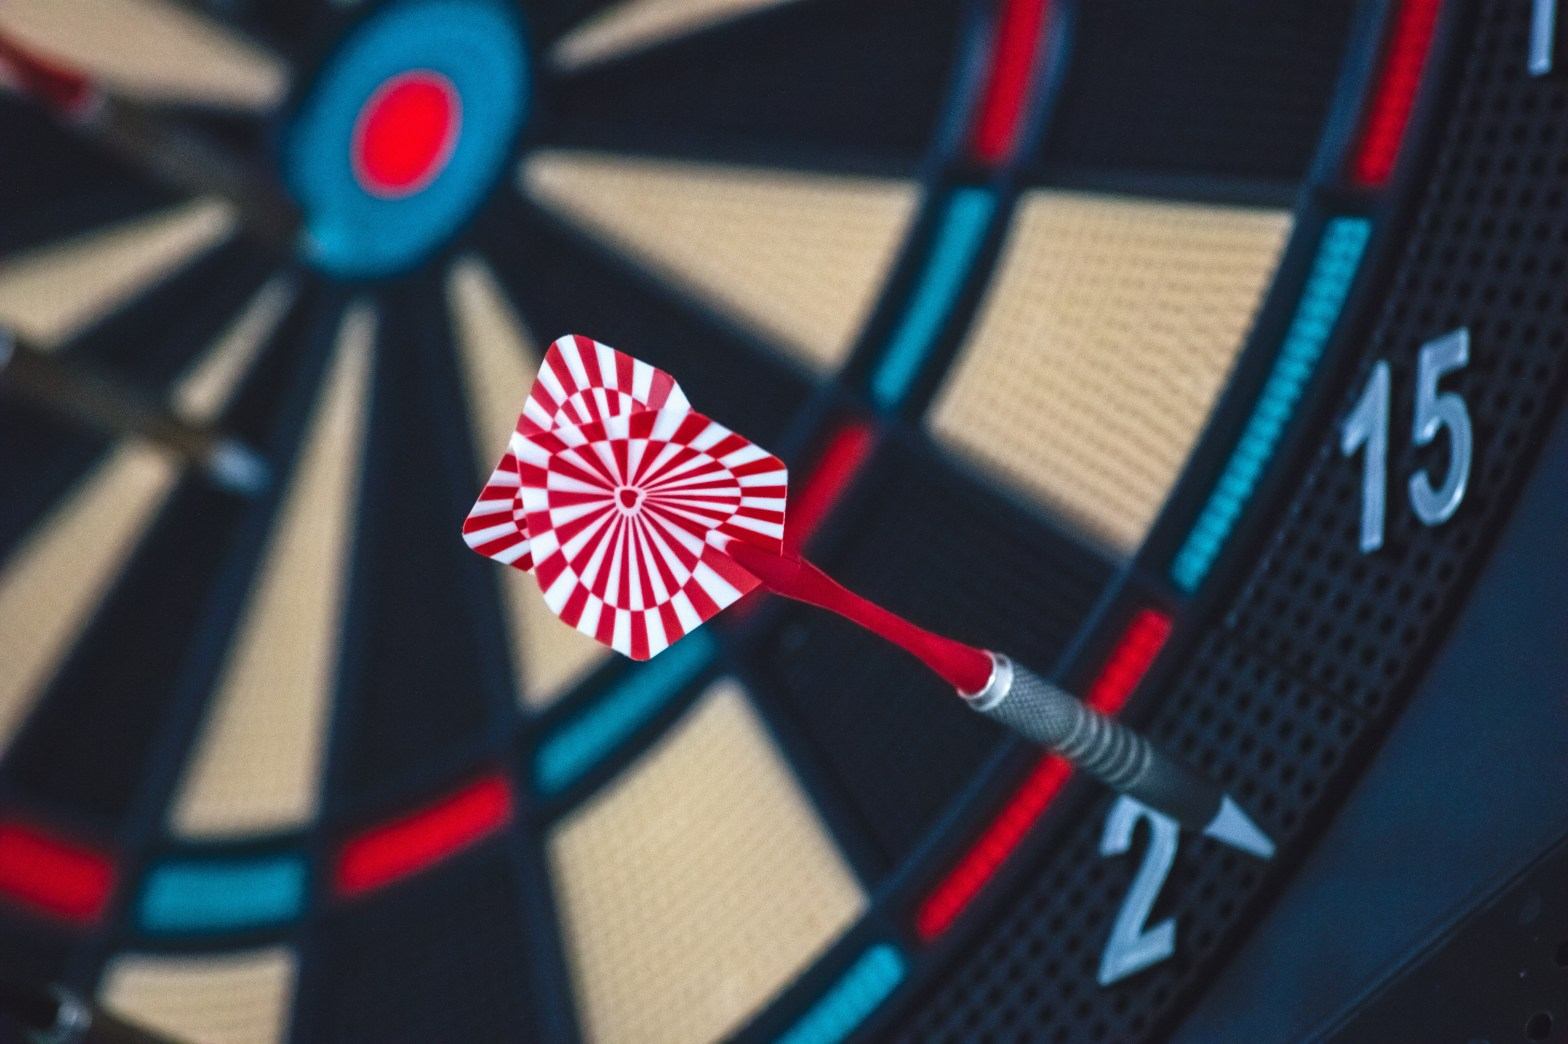 Dartboard showing what happens when you aim low